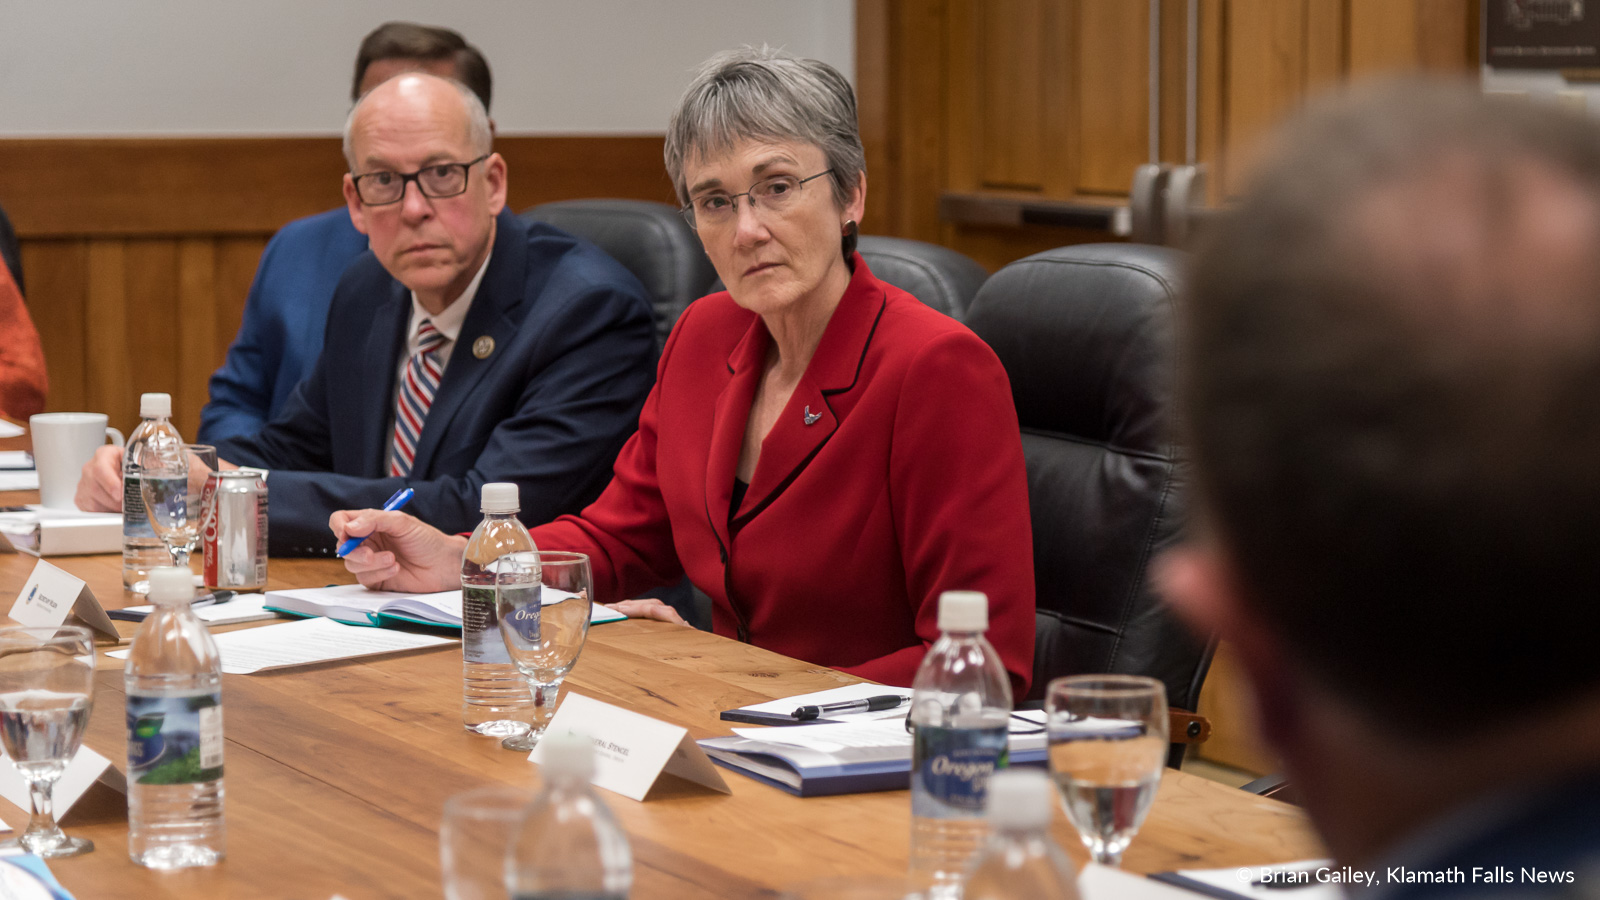 Secretary Wilson listens to Paul Stewart, CEO of Sky Lakes Medical Center about medical issues of the Klamath Basin. November 3, 2018 (Brian Gailey)